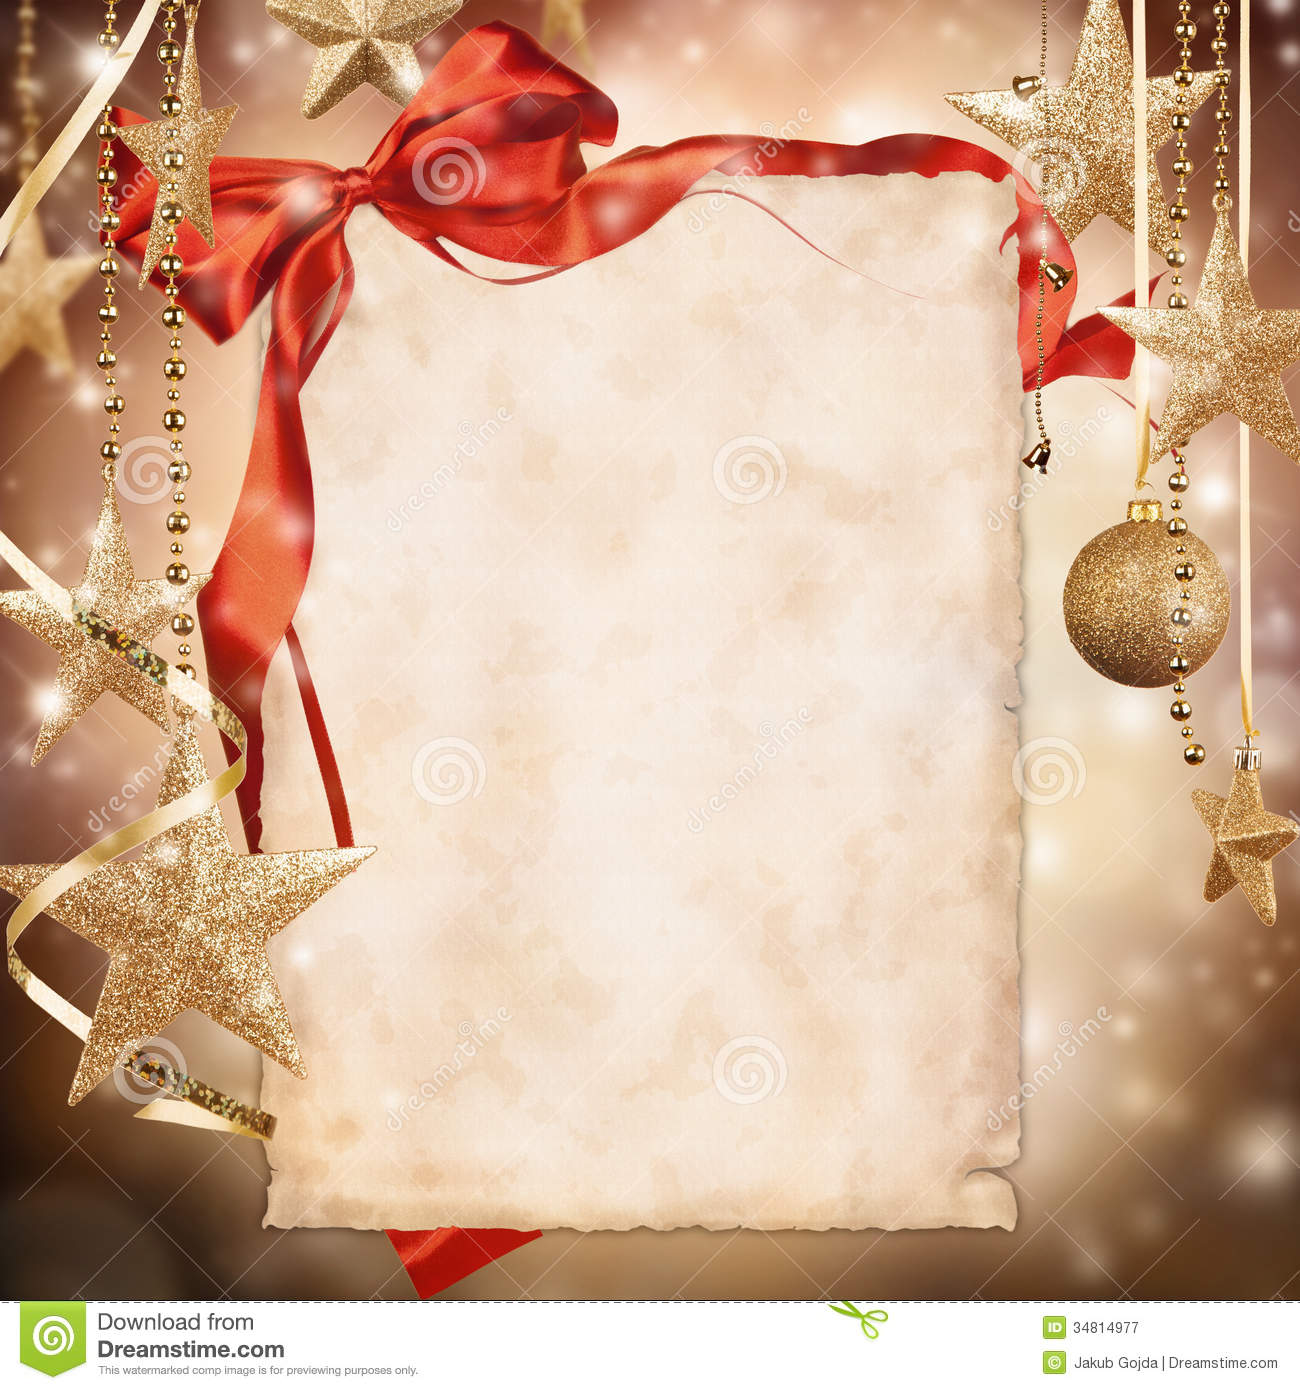 essay on christmas celebrations Open document below is an essay on christmas celebrations from anti essays, your source for research papers, essays, and term paper examples.